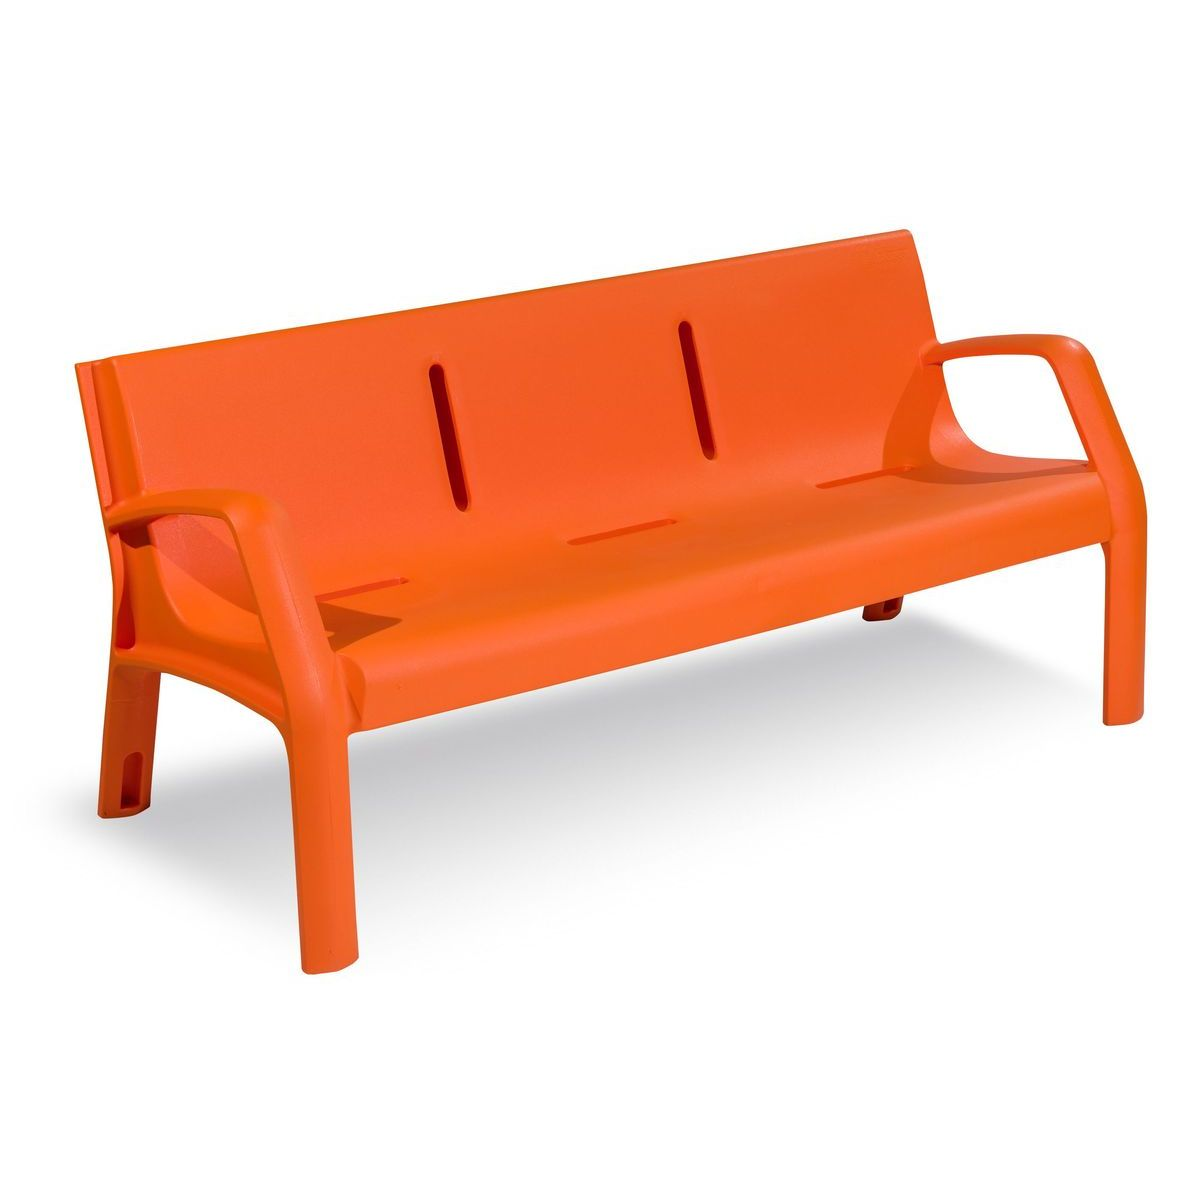 Alvium Orange Bench C-1017-7033